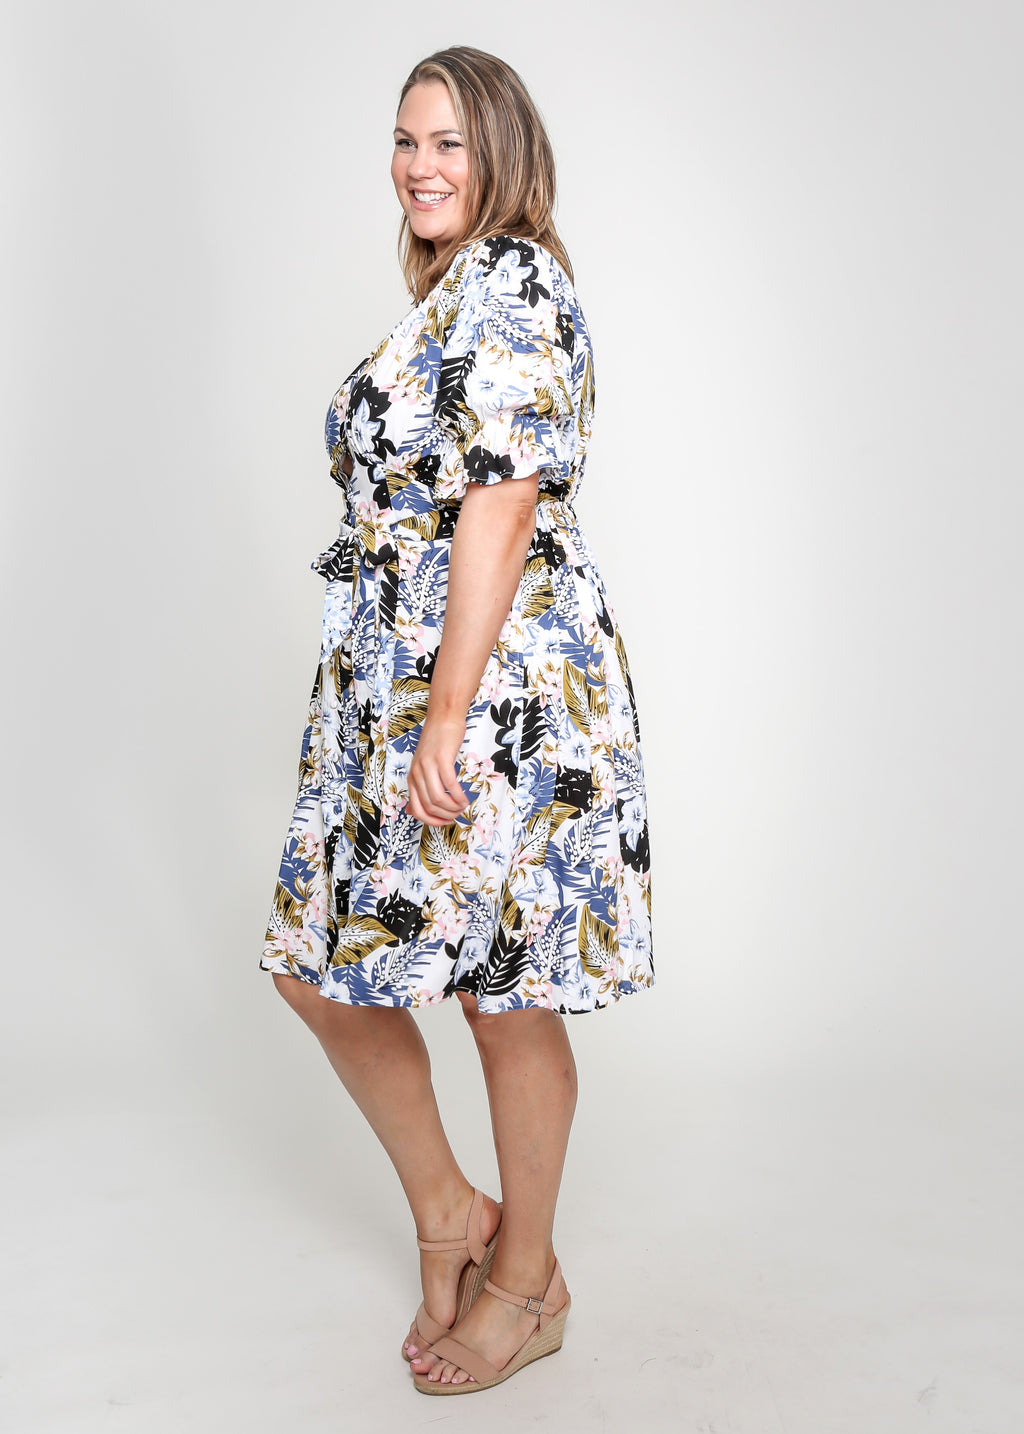 PREA DRESS - LILICA PRINT